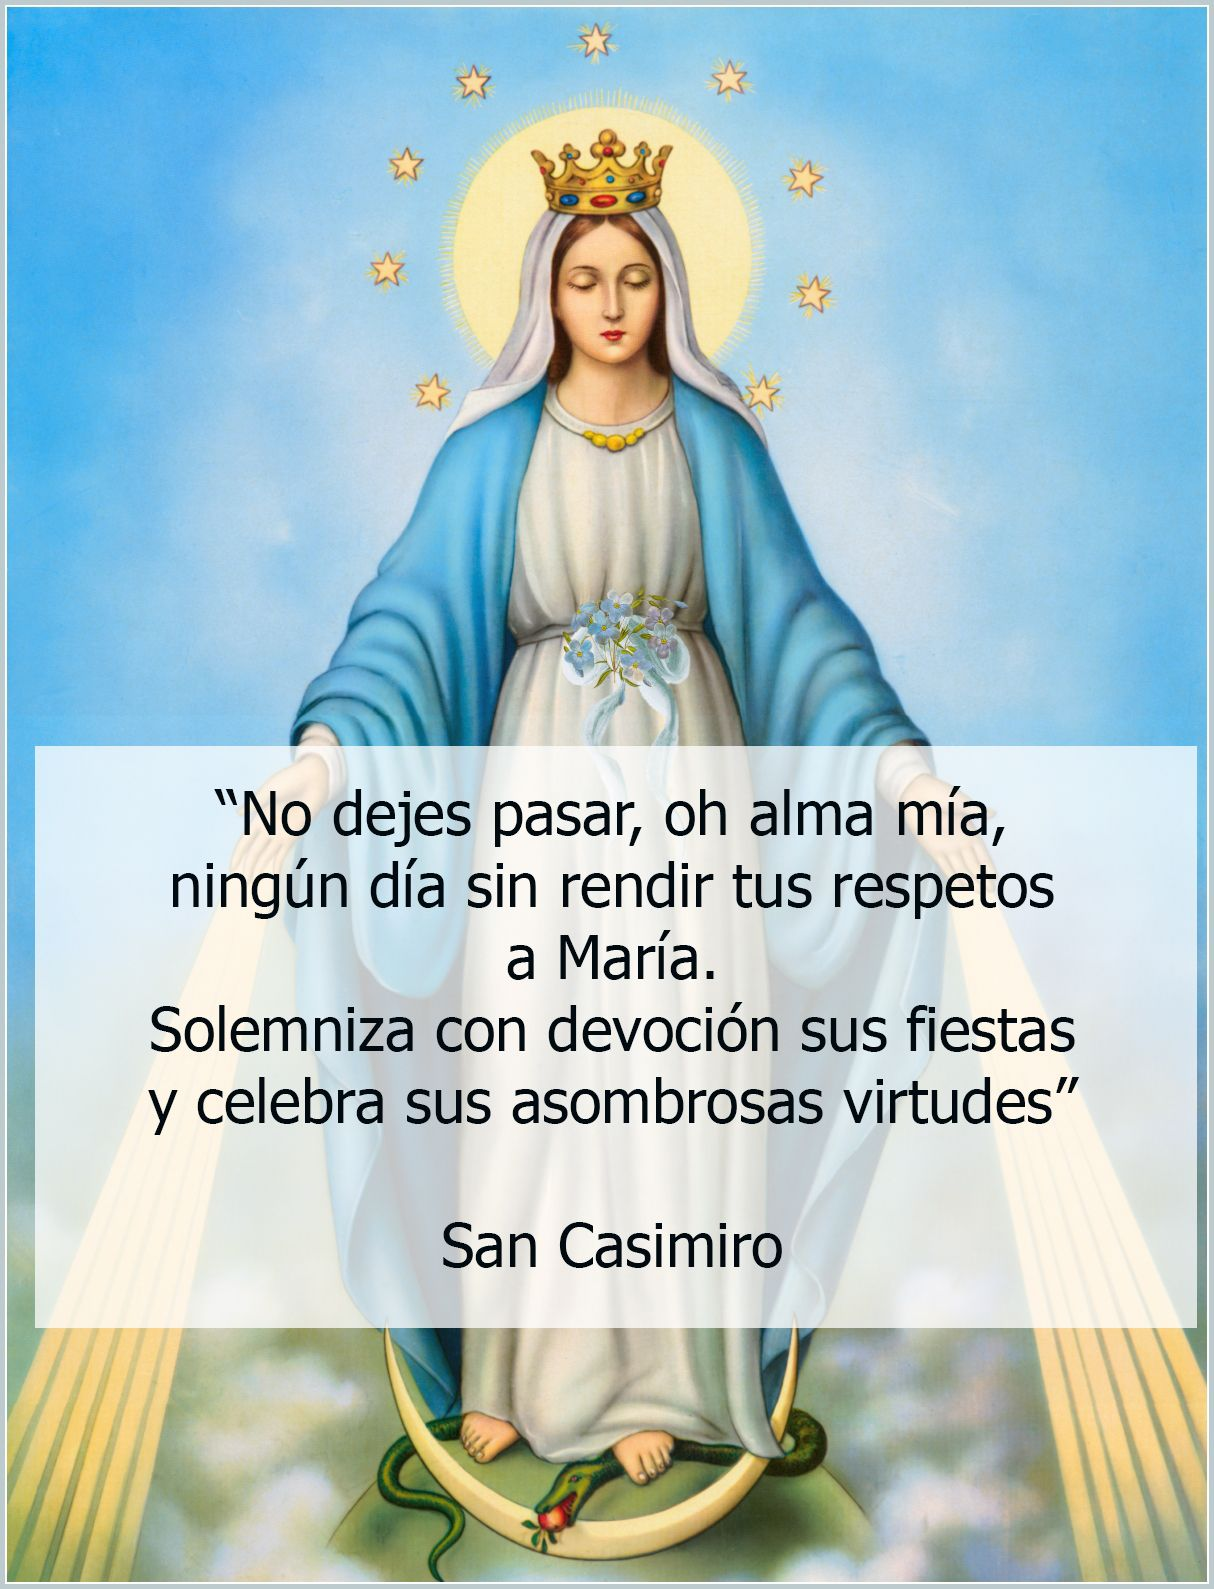 Celebra Sus Virtudes Two Hearts Jesus And Mary One Wish Save